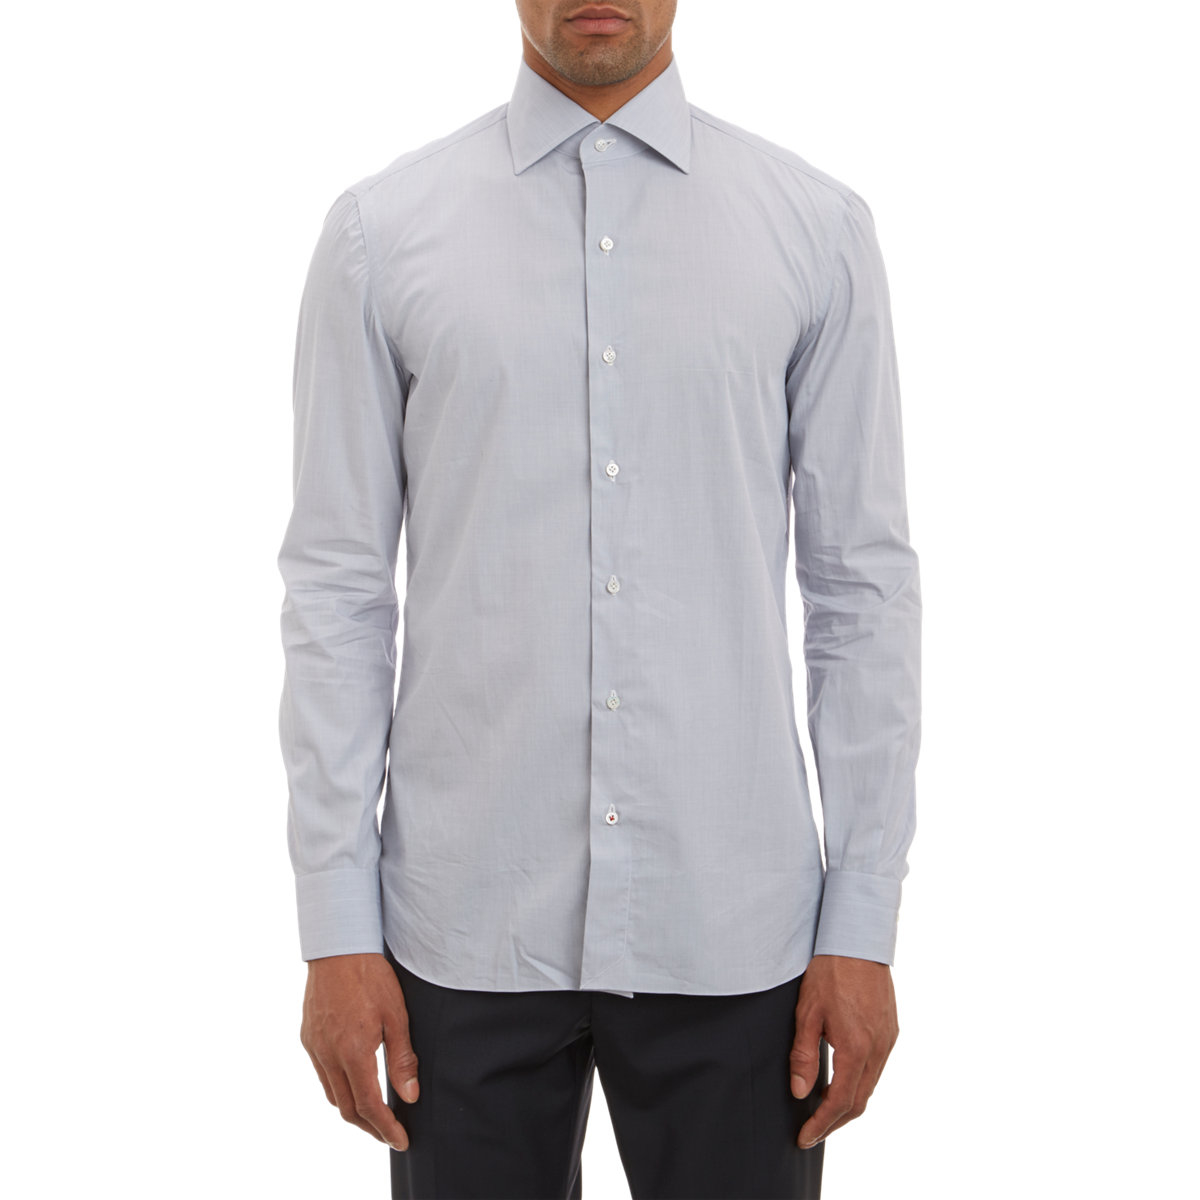 Lyst isaia men 39 s solid spread collar shirt in gray for men for Men s spread collar shirts